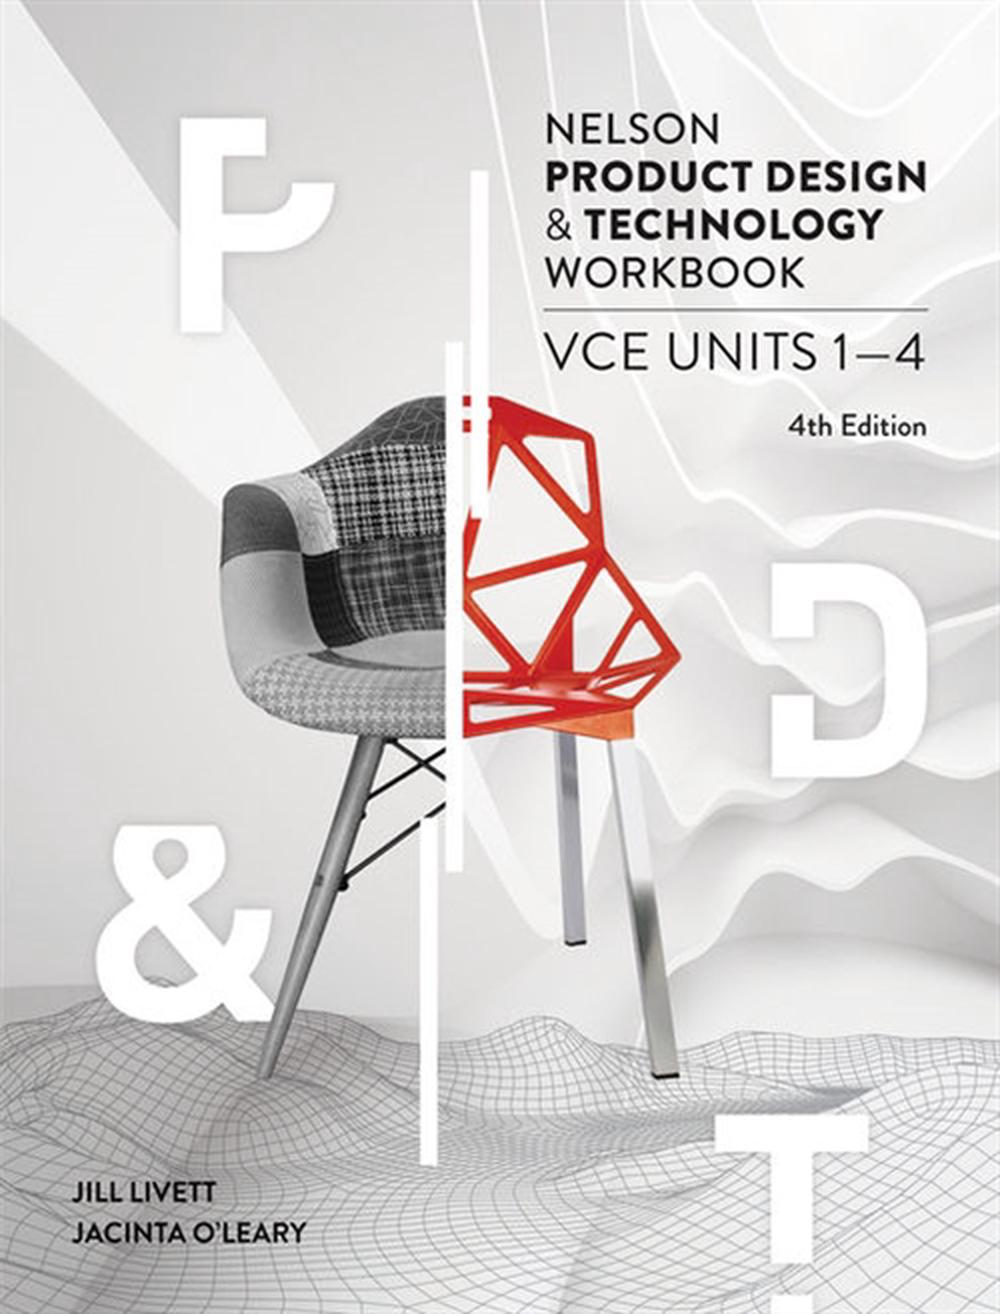 Nelson Product Design and Technology VCE Units 1-4 Workbook by J. Livett,J. O'Leary, ISBN: 9780170400404